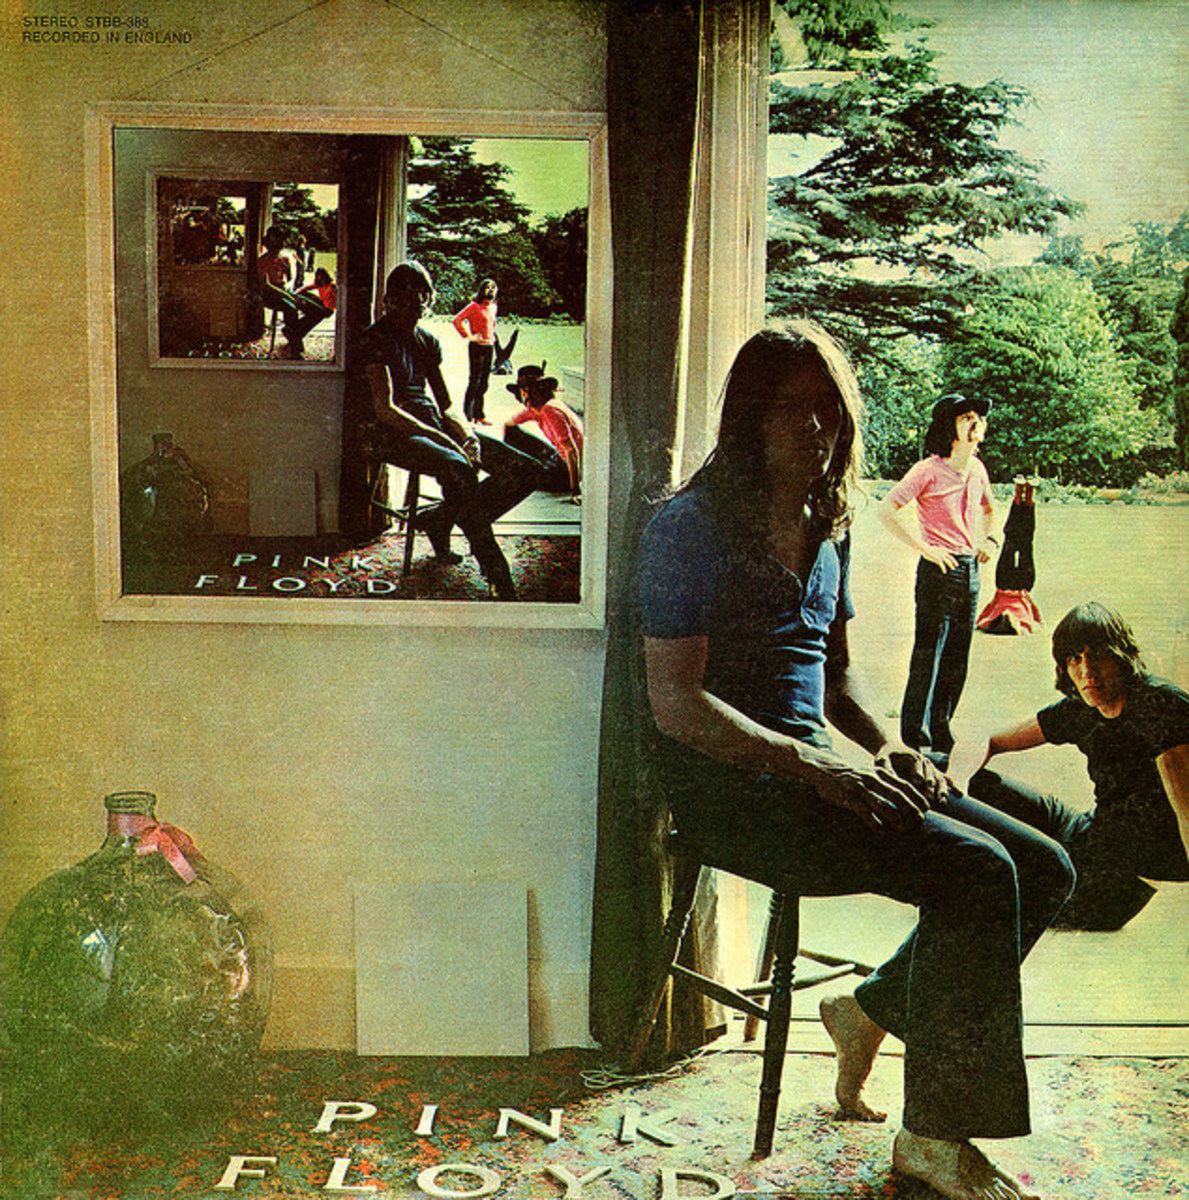 "Pink Floyd ""Ummagumma"" Harvest Records STBB 288 2 12"" LP Vinyl Record Set, UK Pressing (1969) Album Cover Design by Hipgnosis."